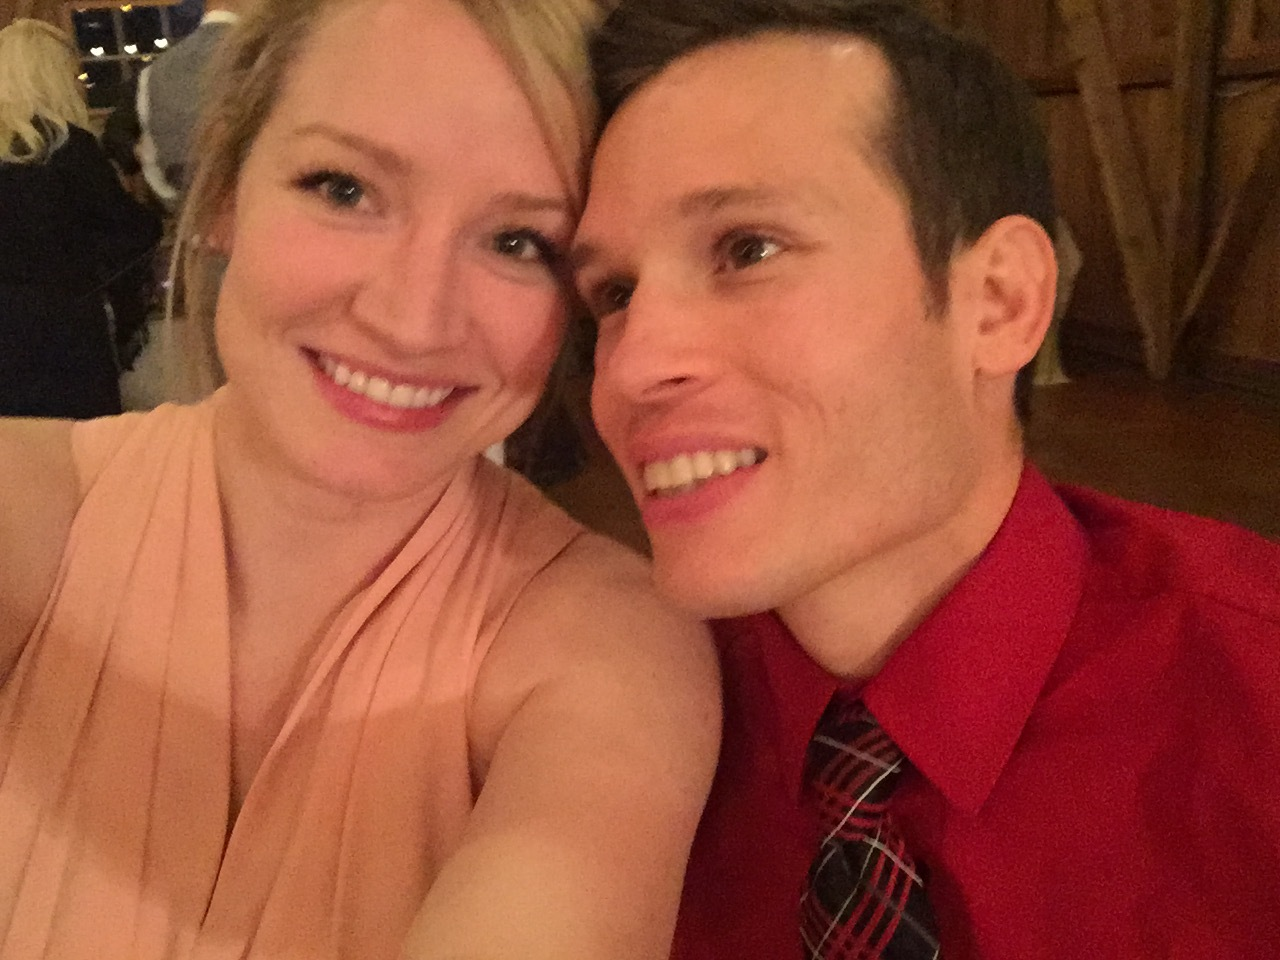 hibbing-wedding-selfie_heatherbyhand.JPG